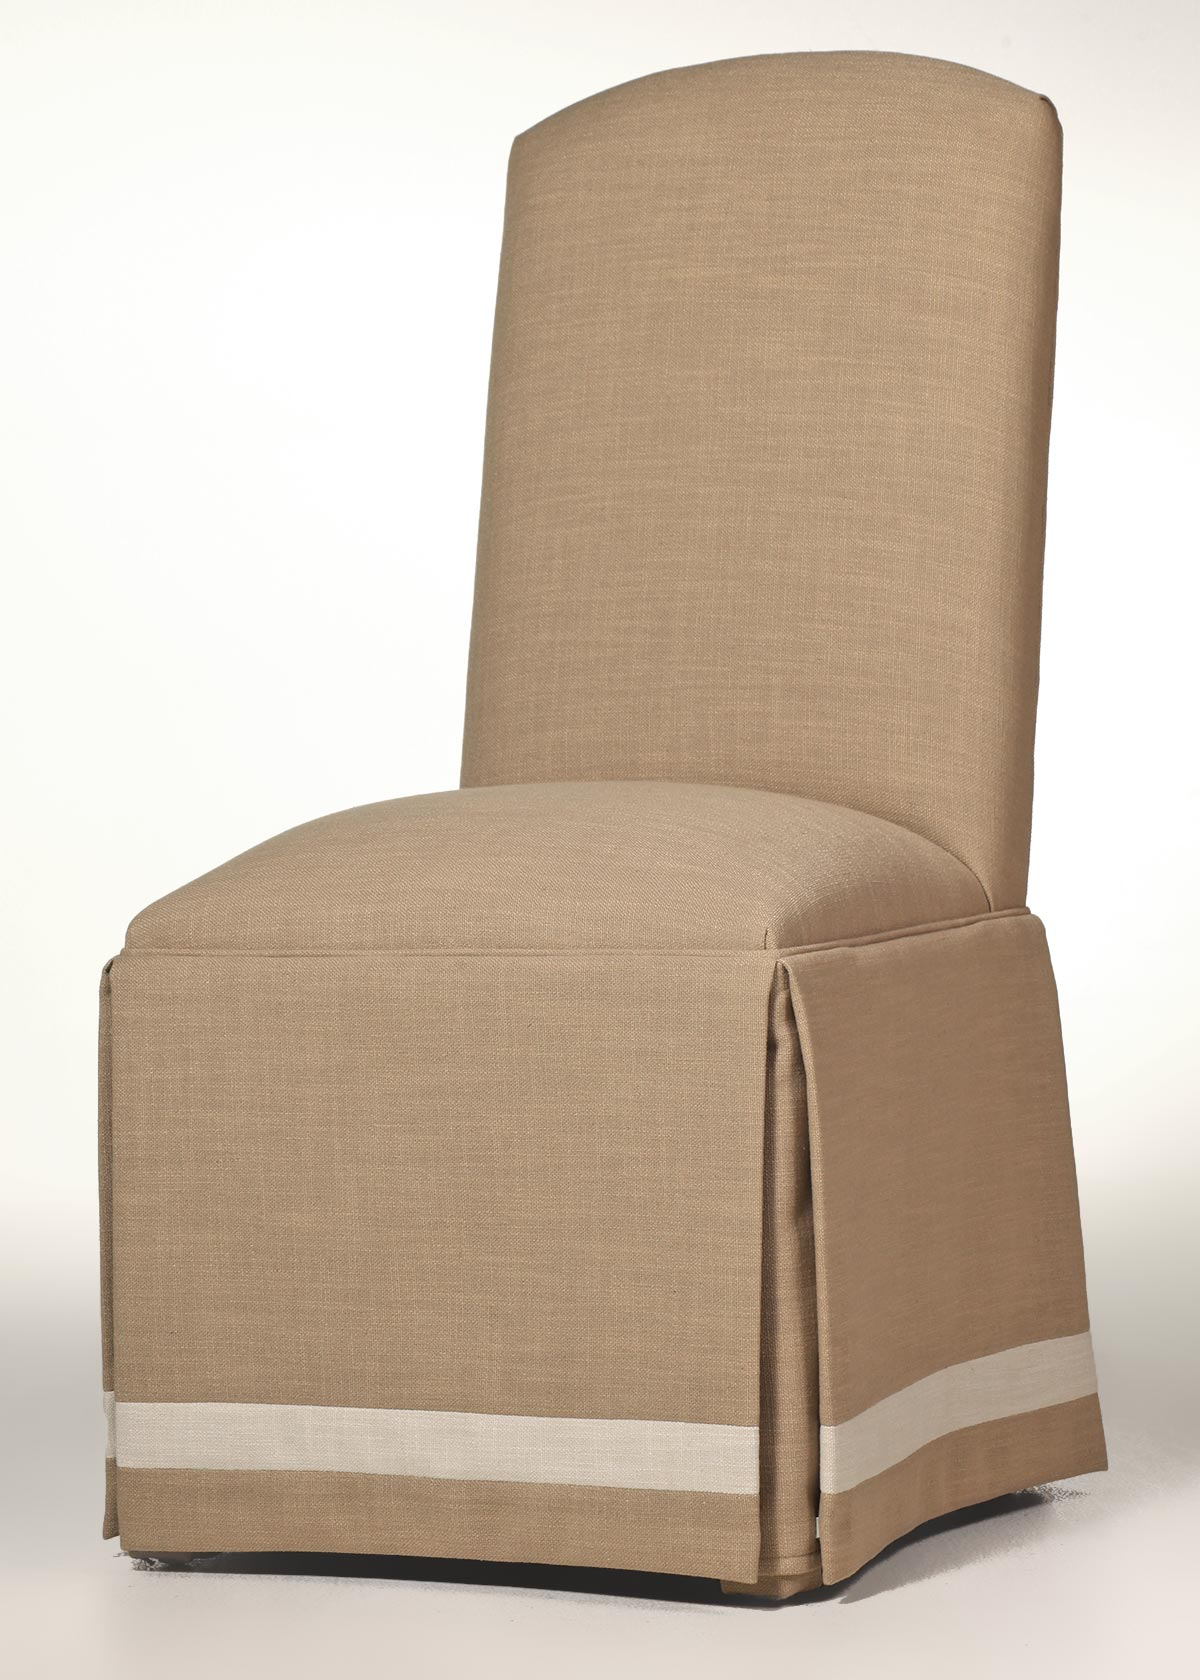 parsons chairs with skirt chair for standing desk crescent back w banded custom